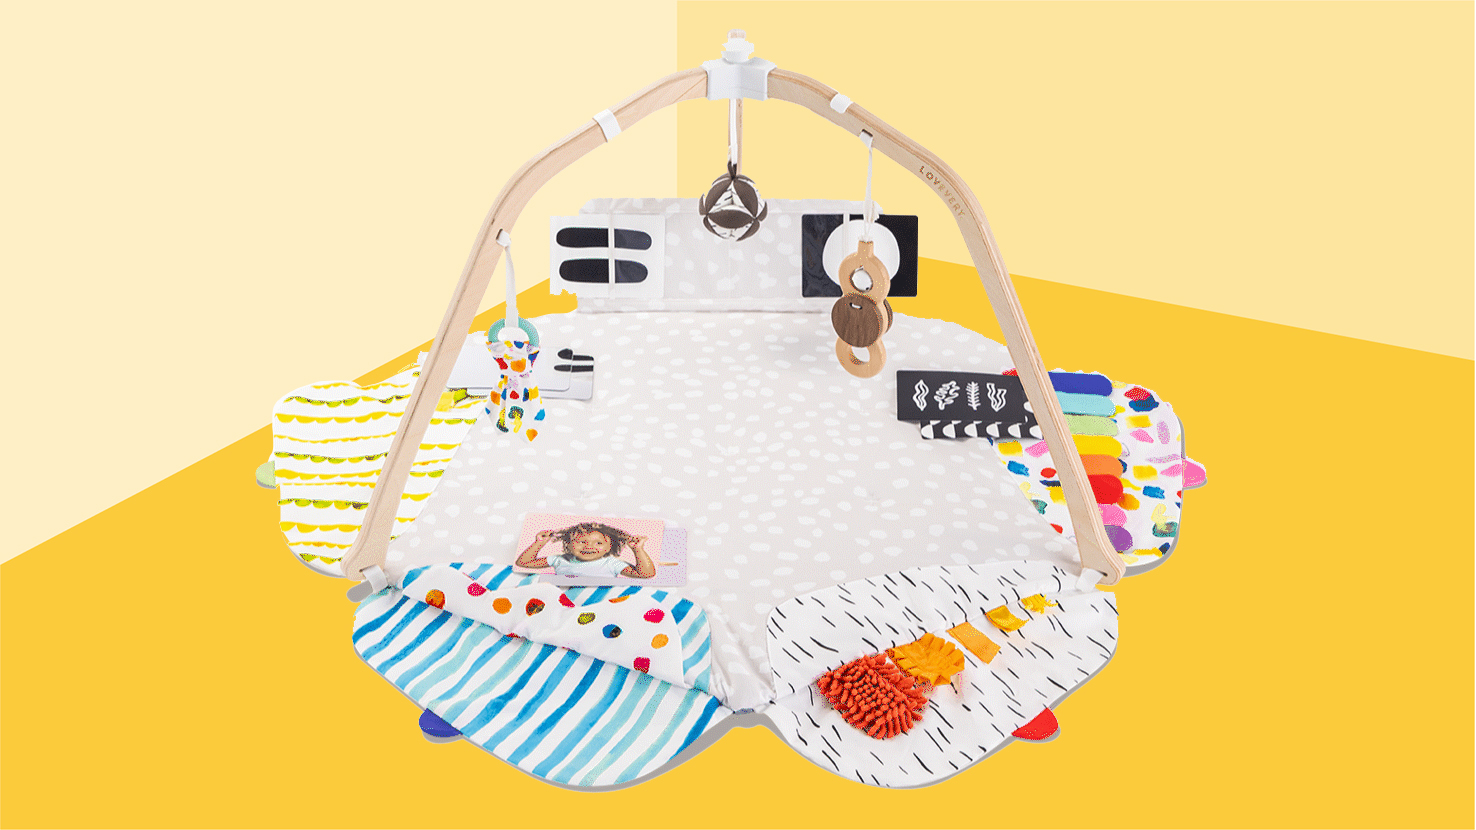 Best newborn baby gifts - play gym on yellow background tout